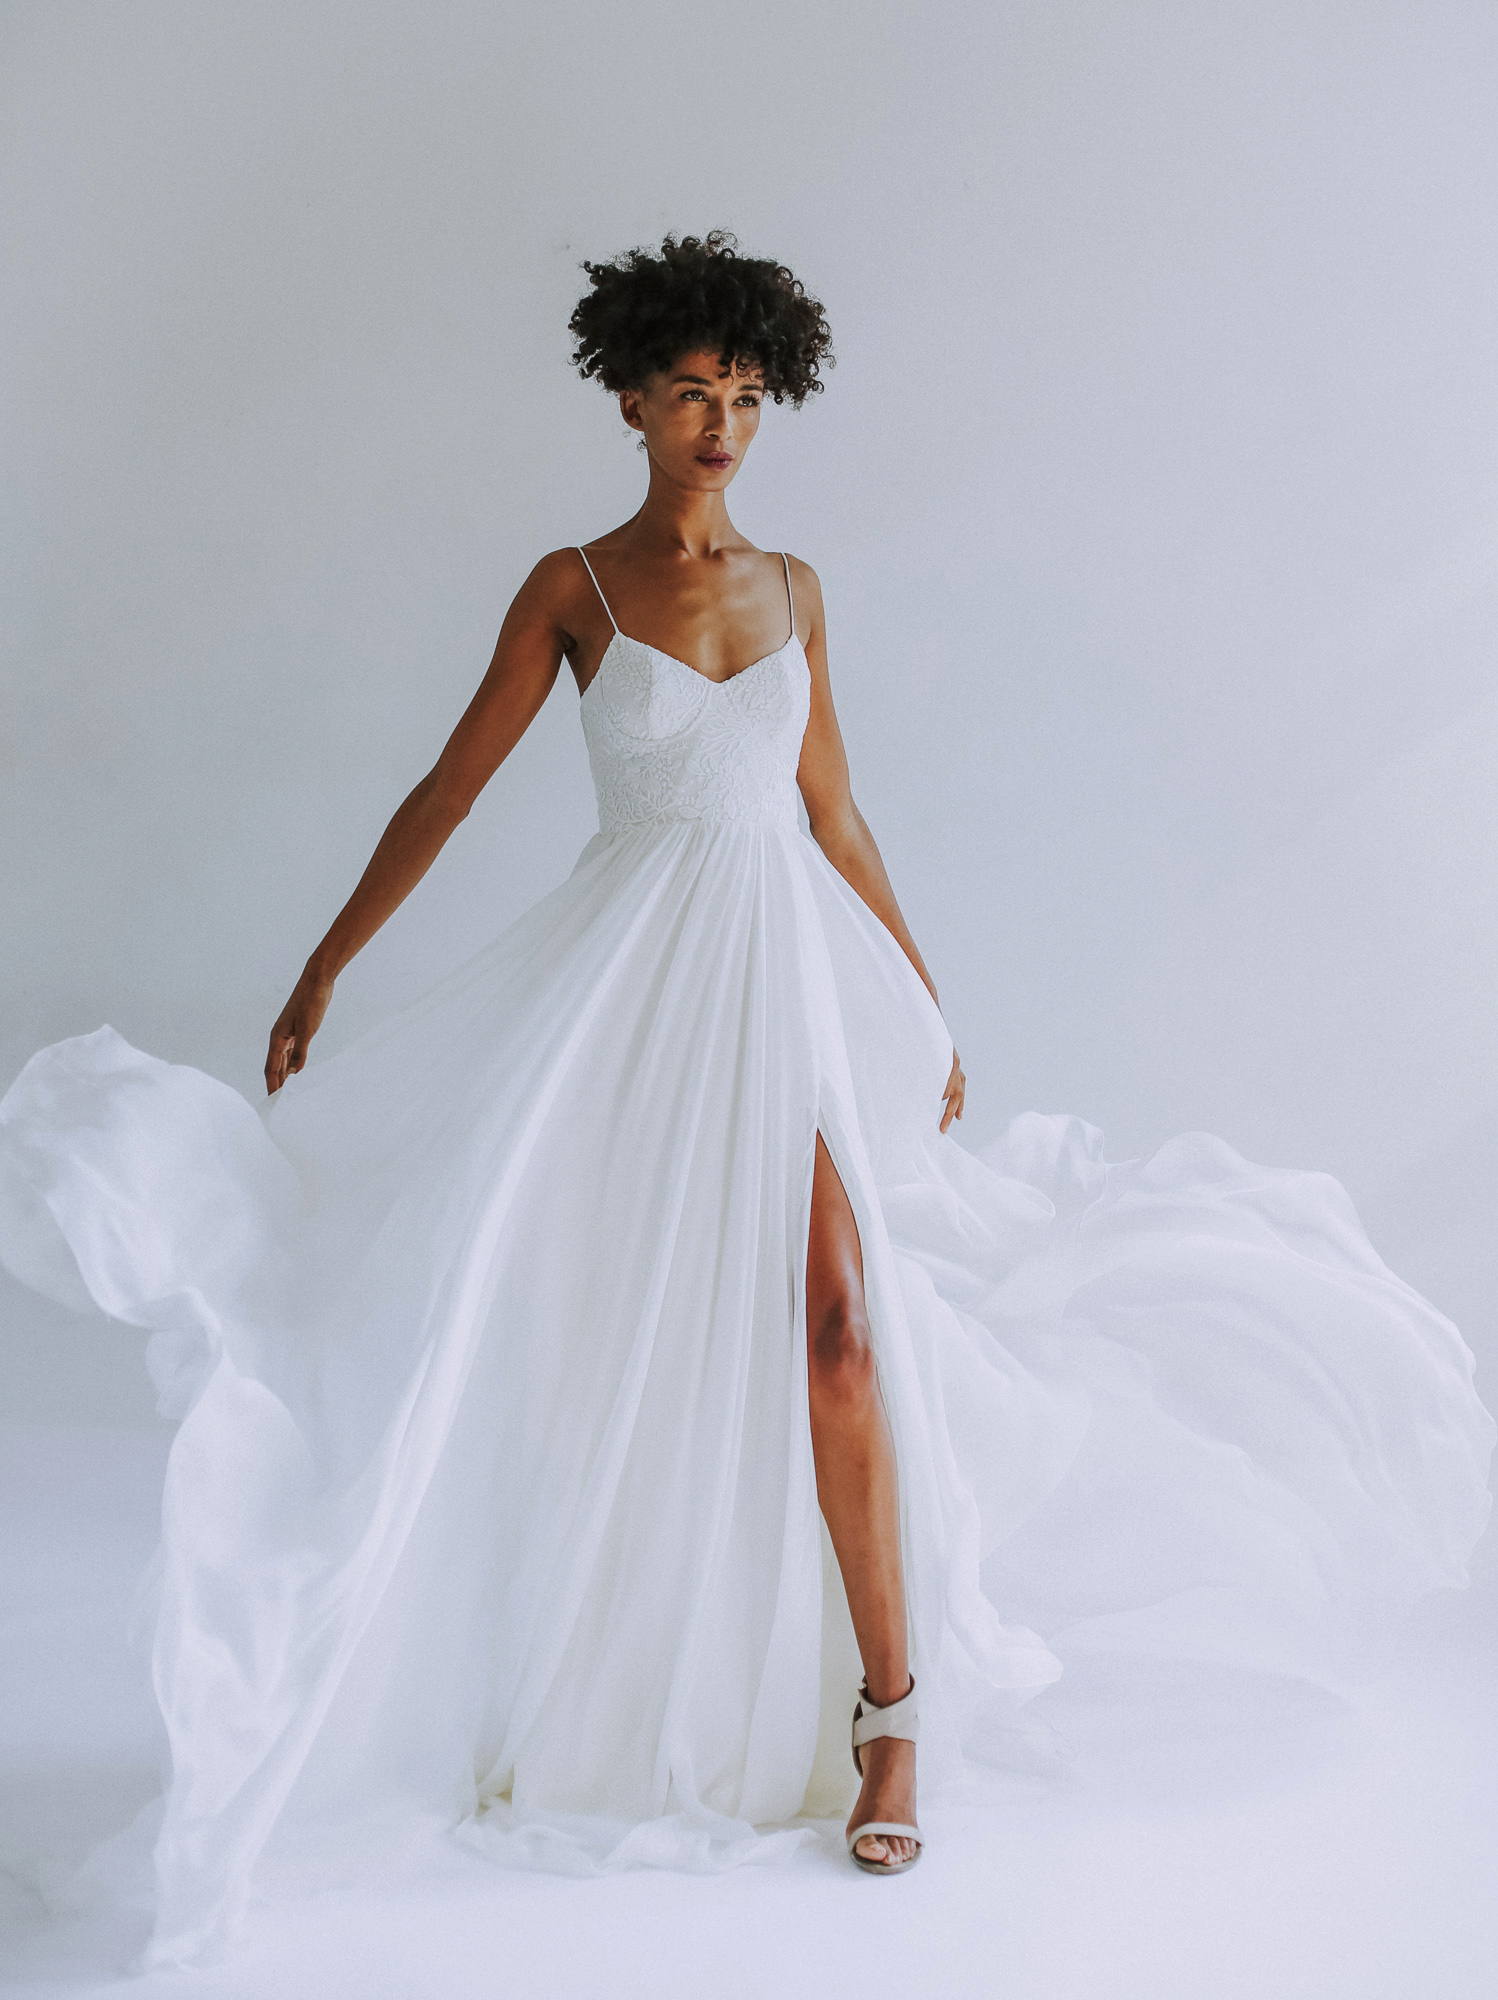 Leanne Marshall spaghetti strap wedding dress fall 2019